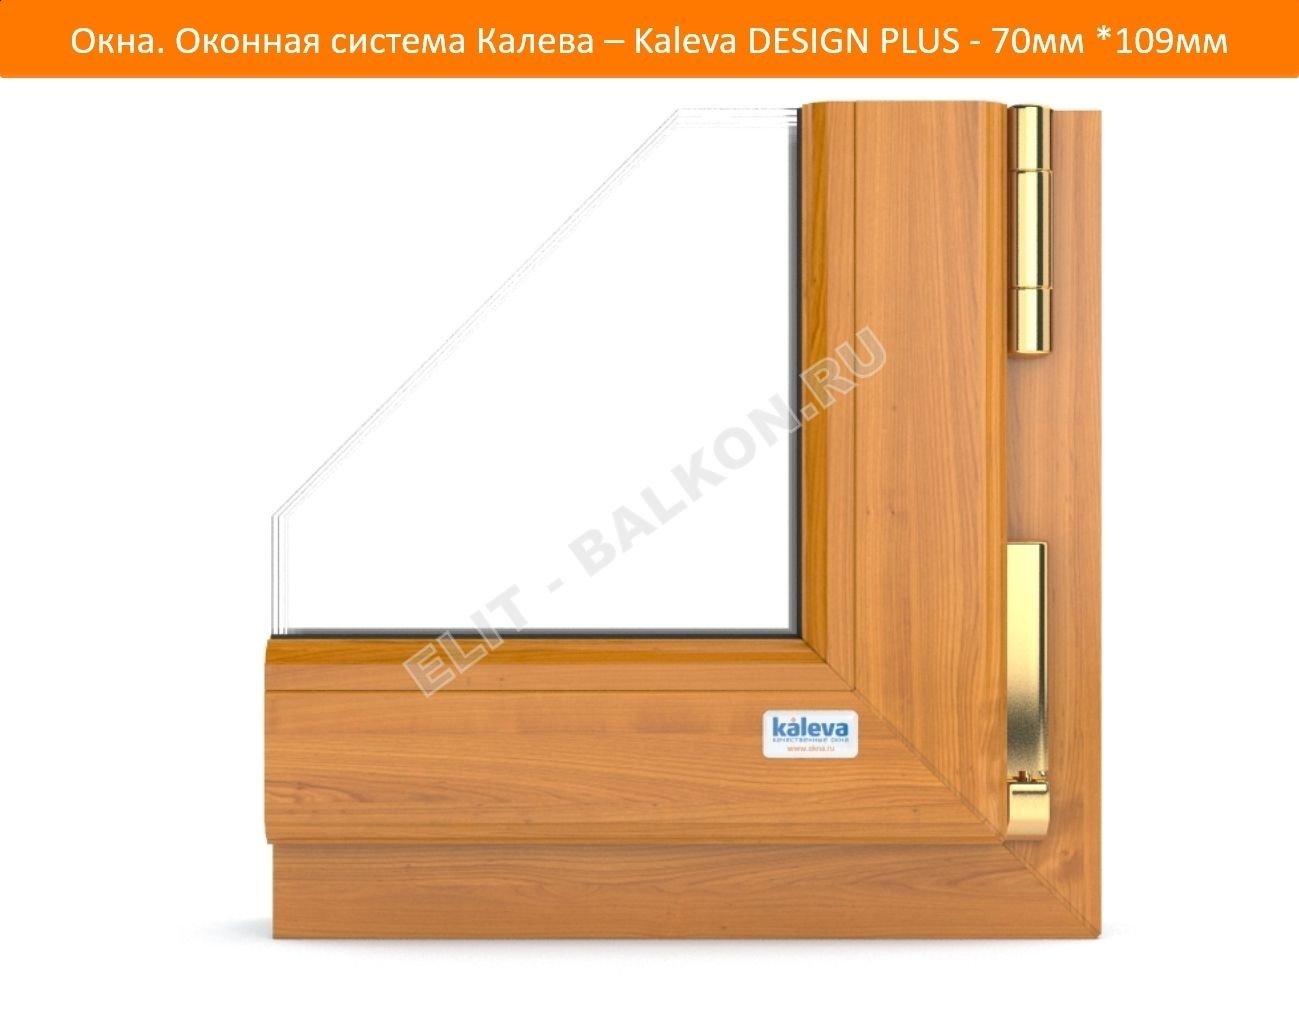 Okna. Okonnaya sistema Kaleva Kaleva DESIGN PLUS 70mm 109mm 4 1 - DESIGN PLUS – на страже вашего покоя!